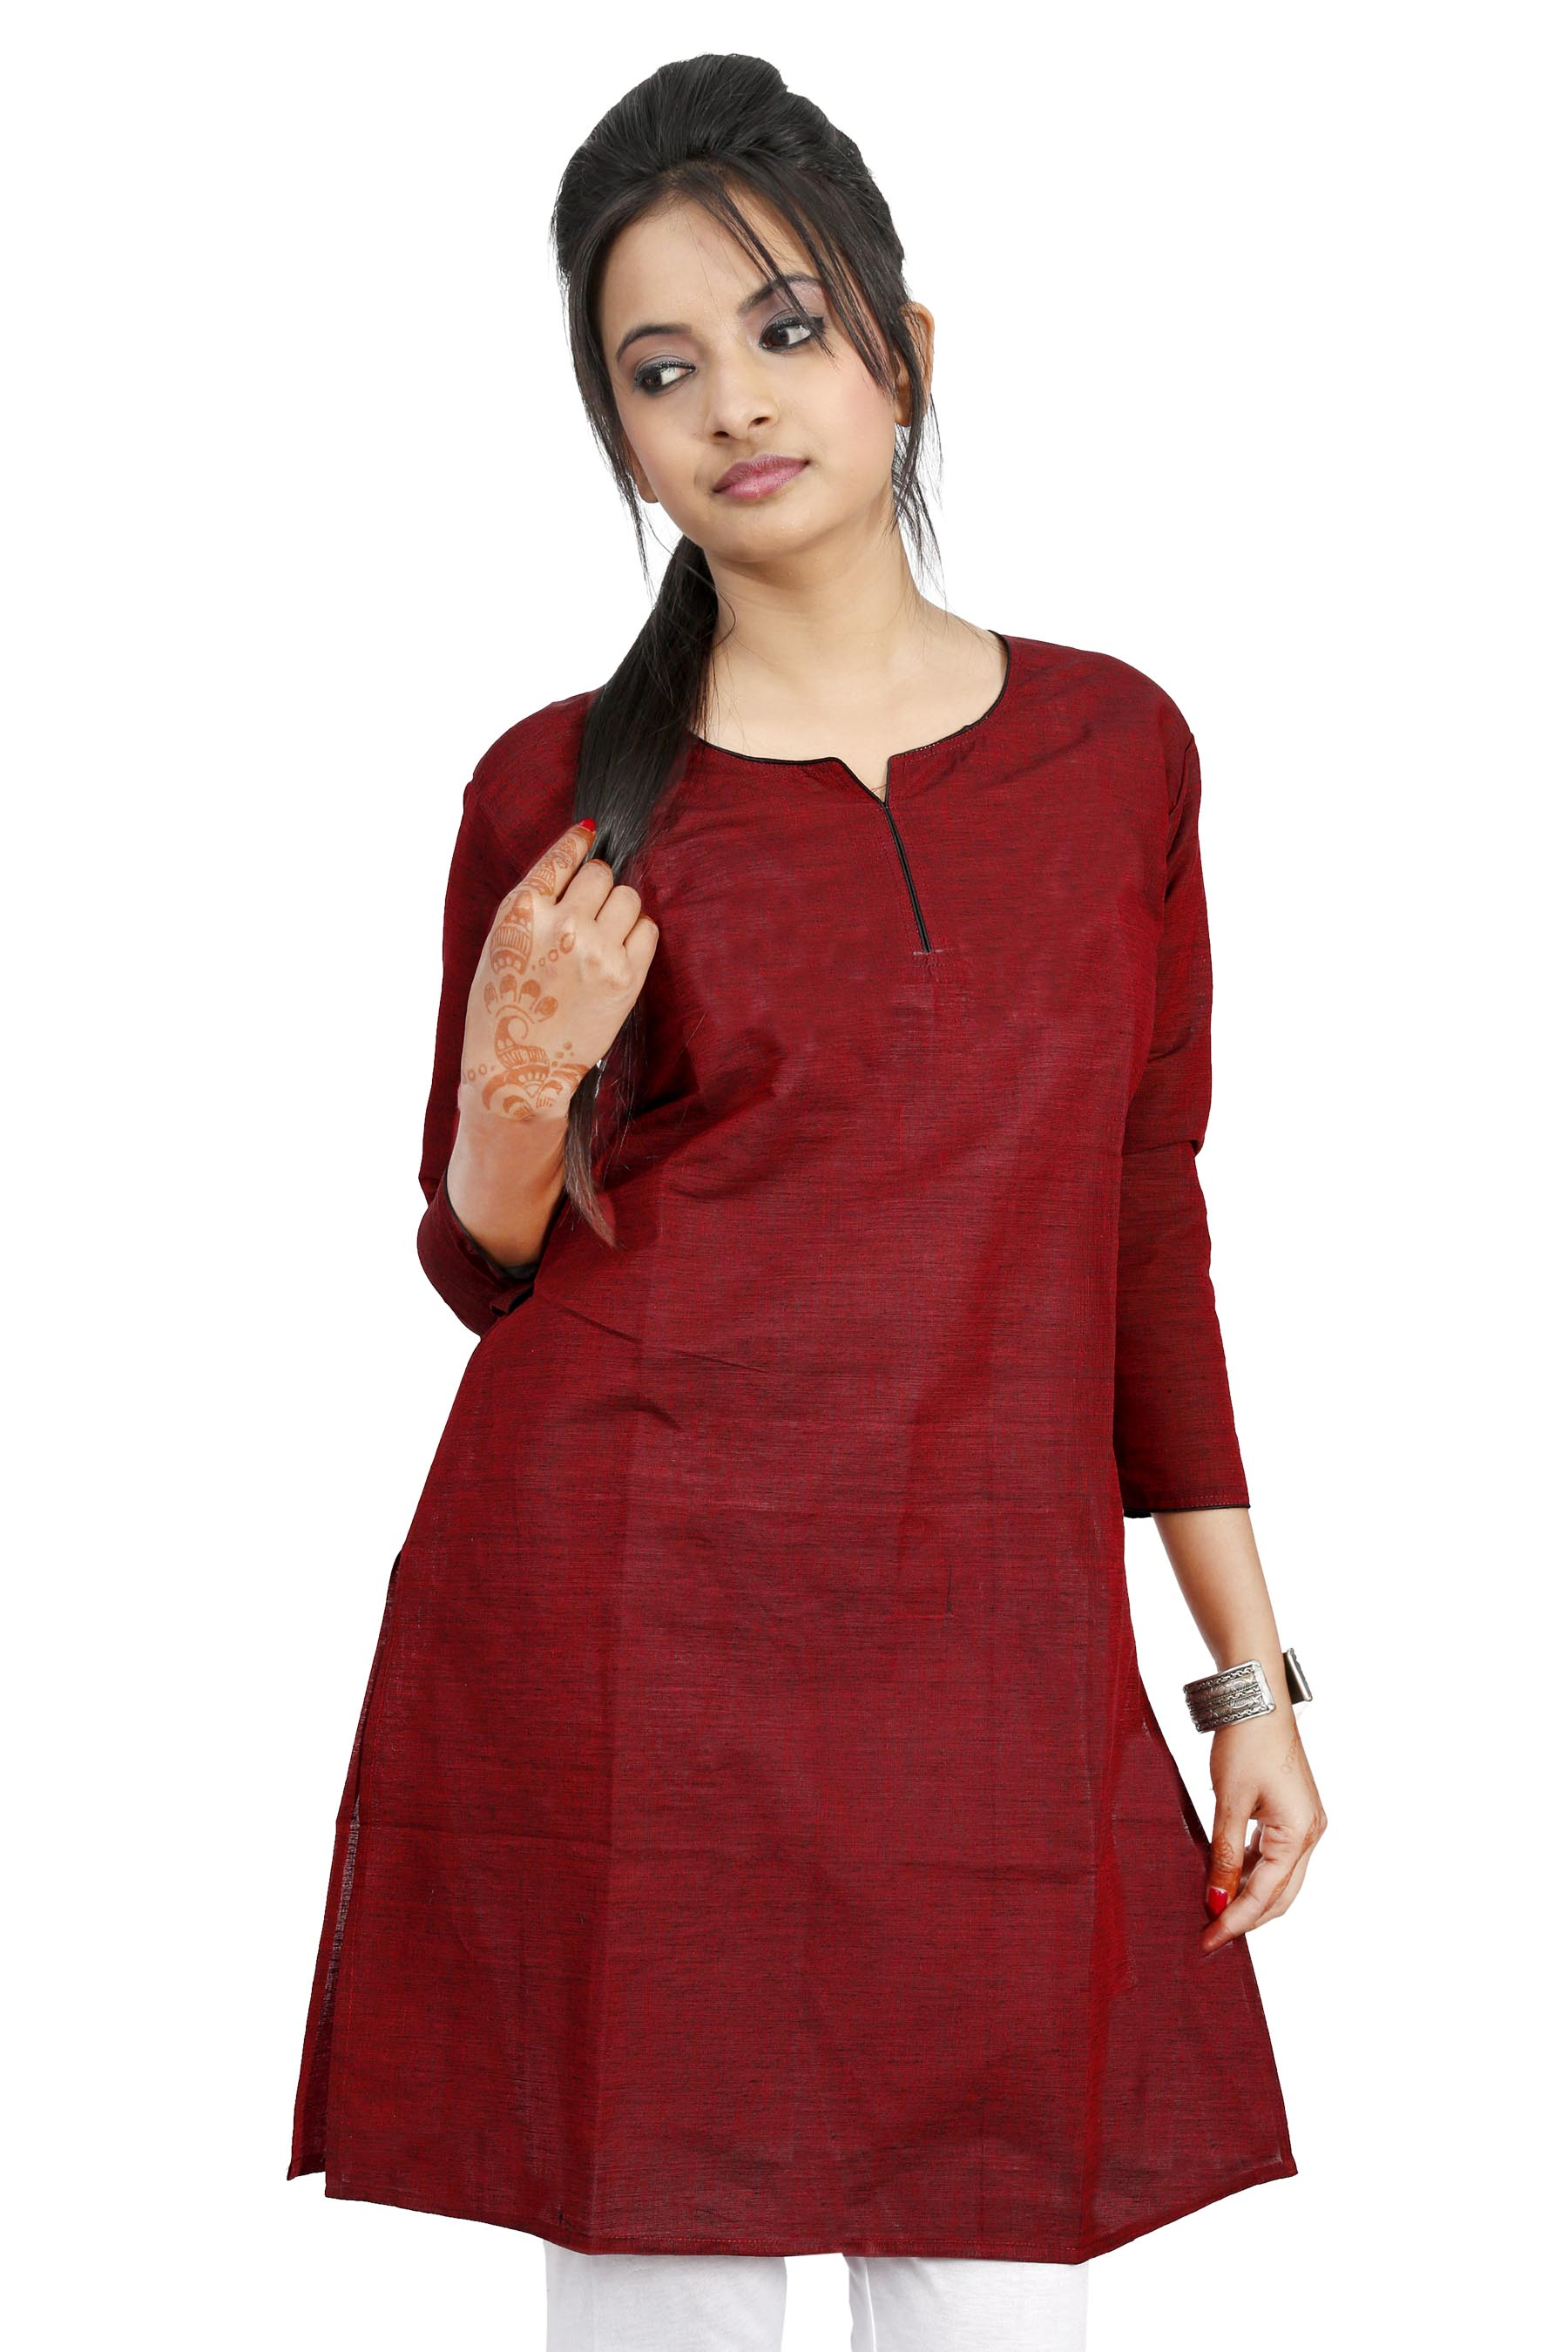 Shop Online for Tops and Tunics at Snapdeal. Keeping in mind the demands of the fashionable women, brands have designed a variety of tops keeping different trends in mind. You can choose from an interesting array of smart tops for women and beautiful tunics to add style to your wardrobe.